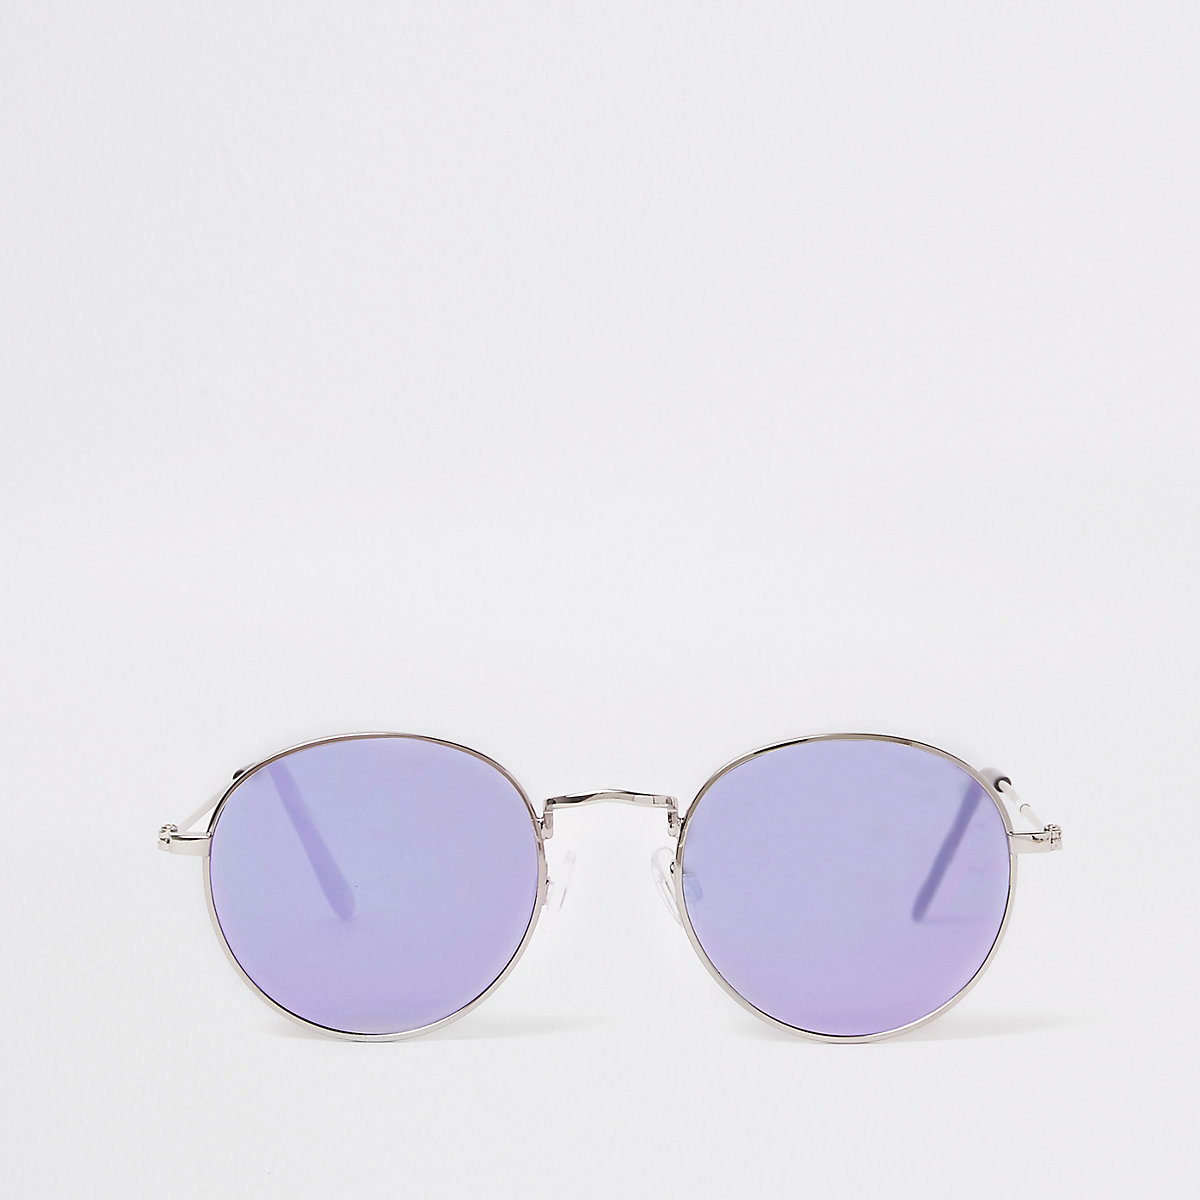 Silver round tinted lens sunglasses